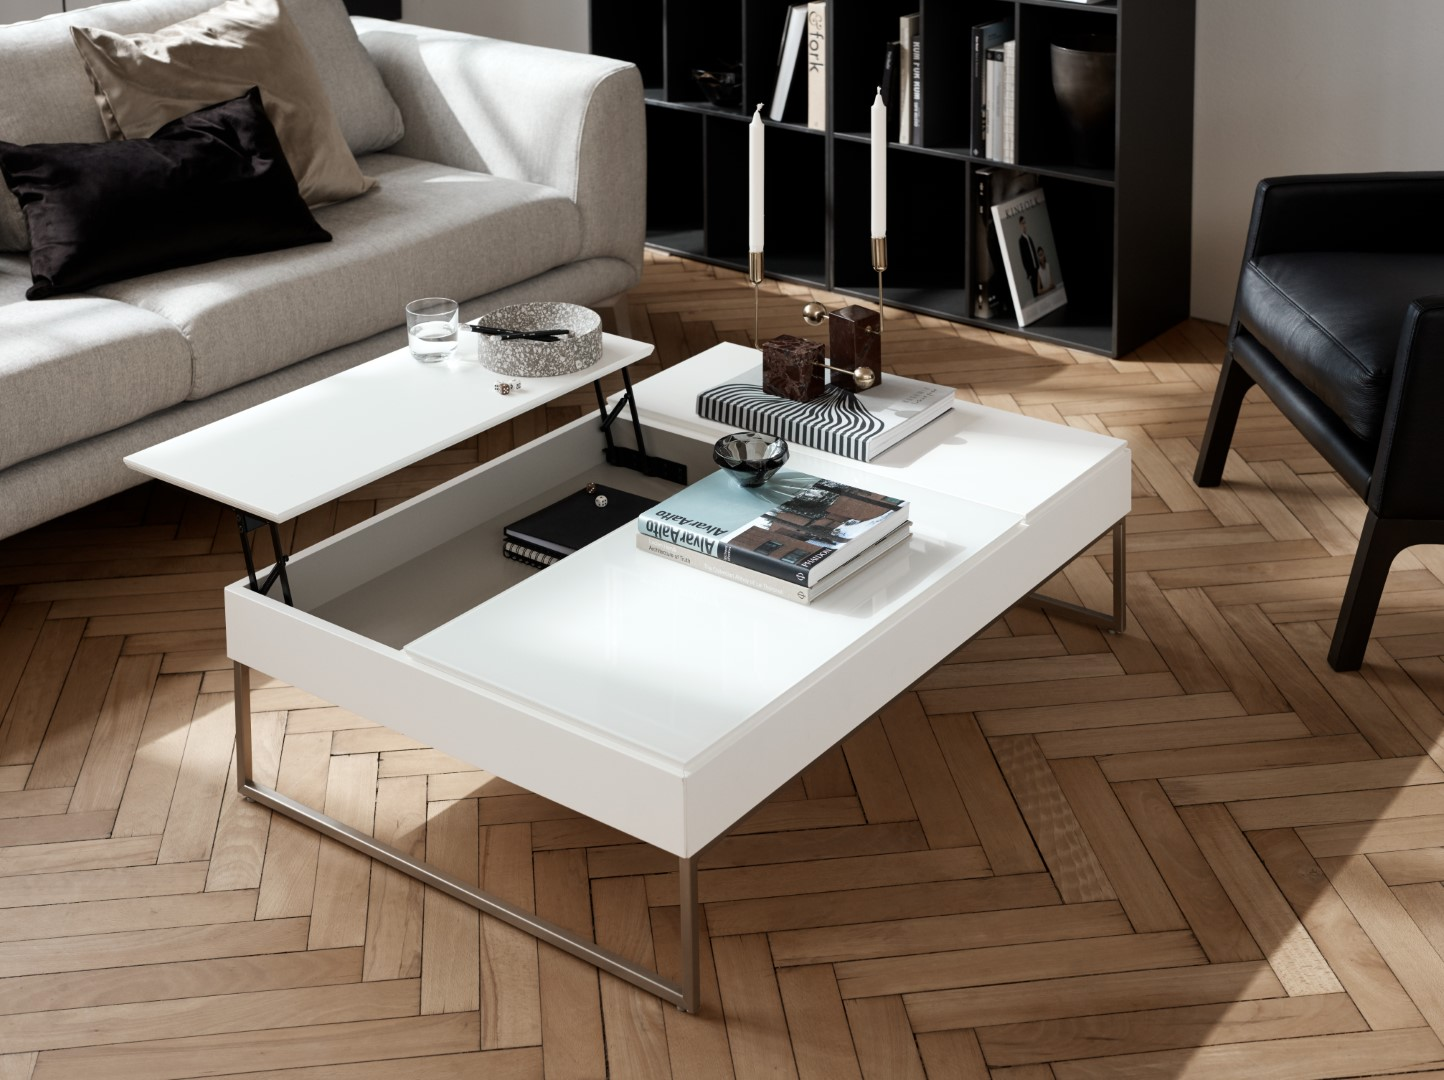 Chiva coffee table with storage by BoConcept